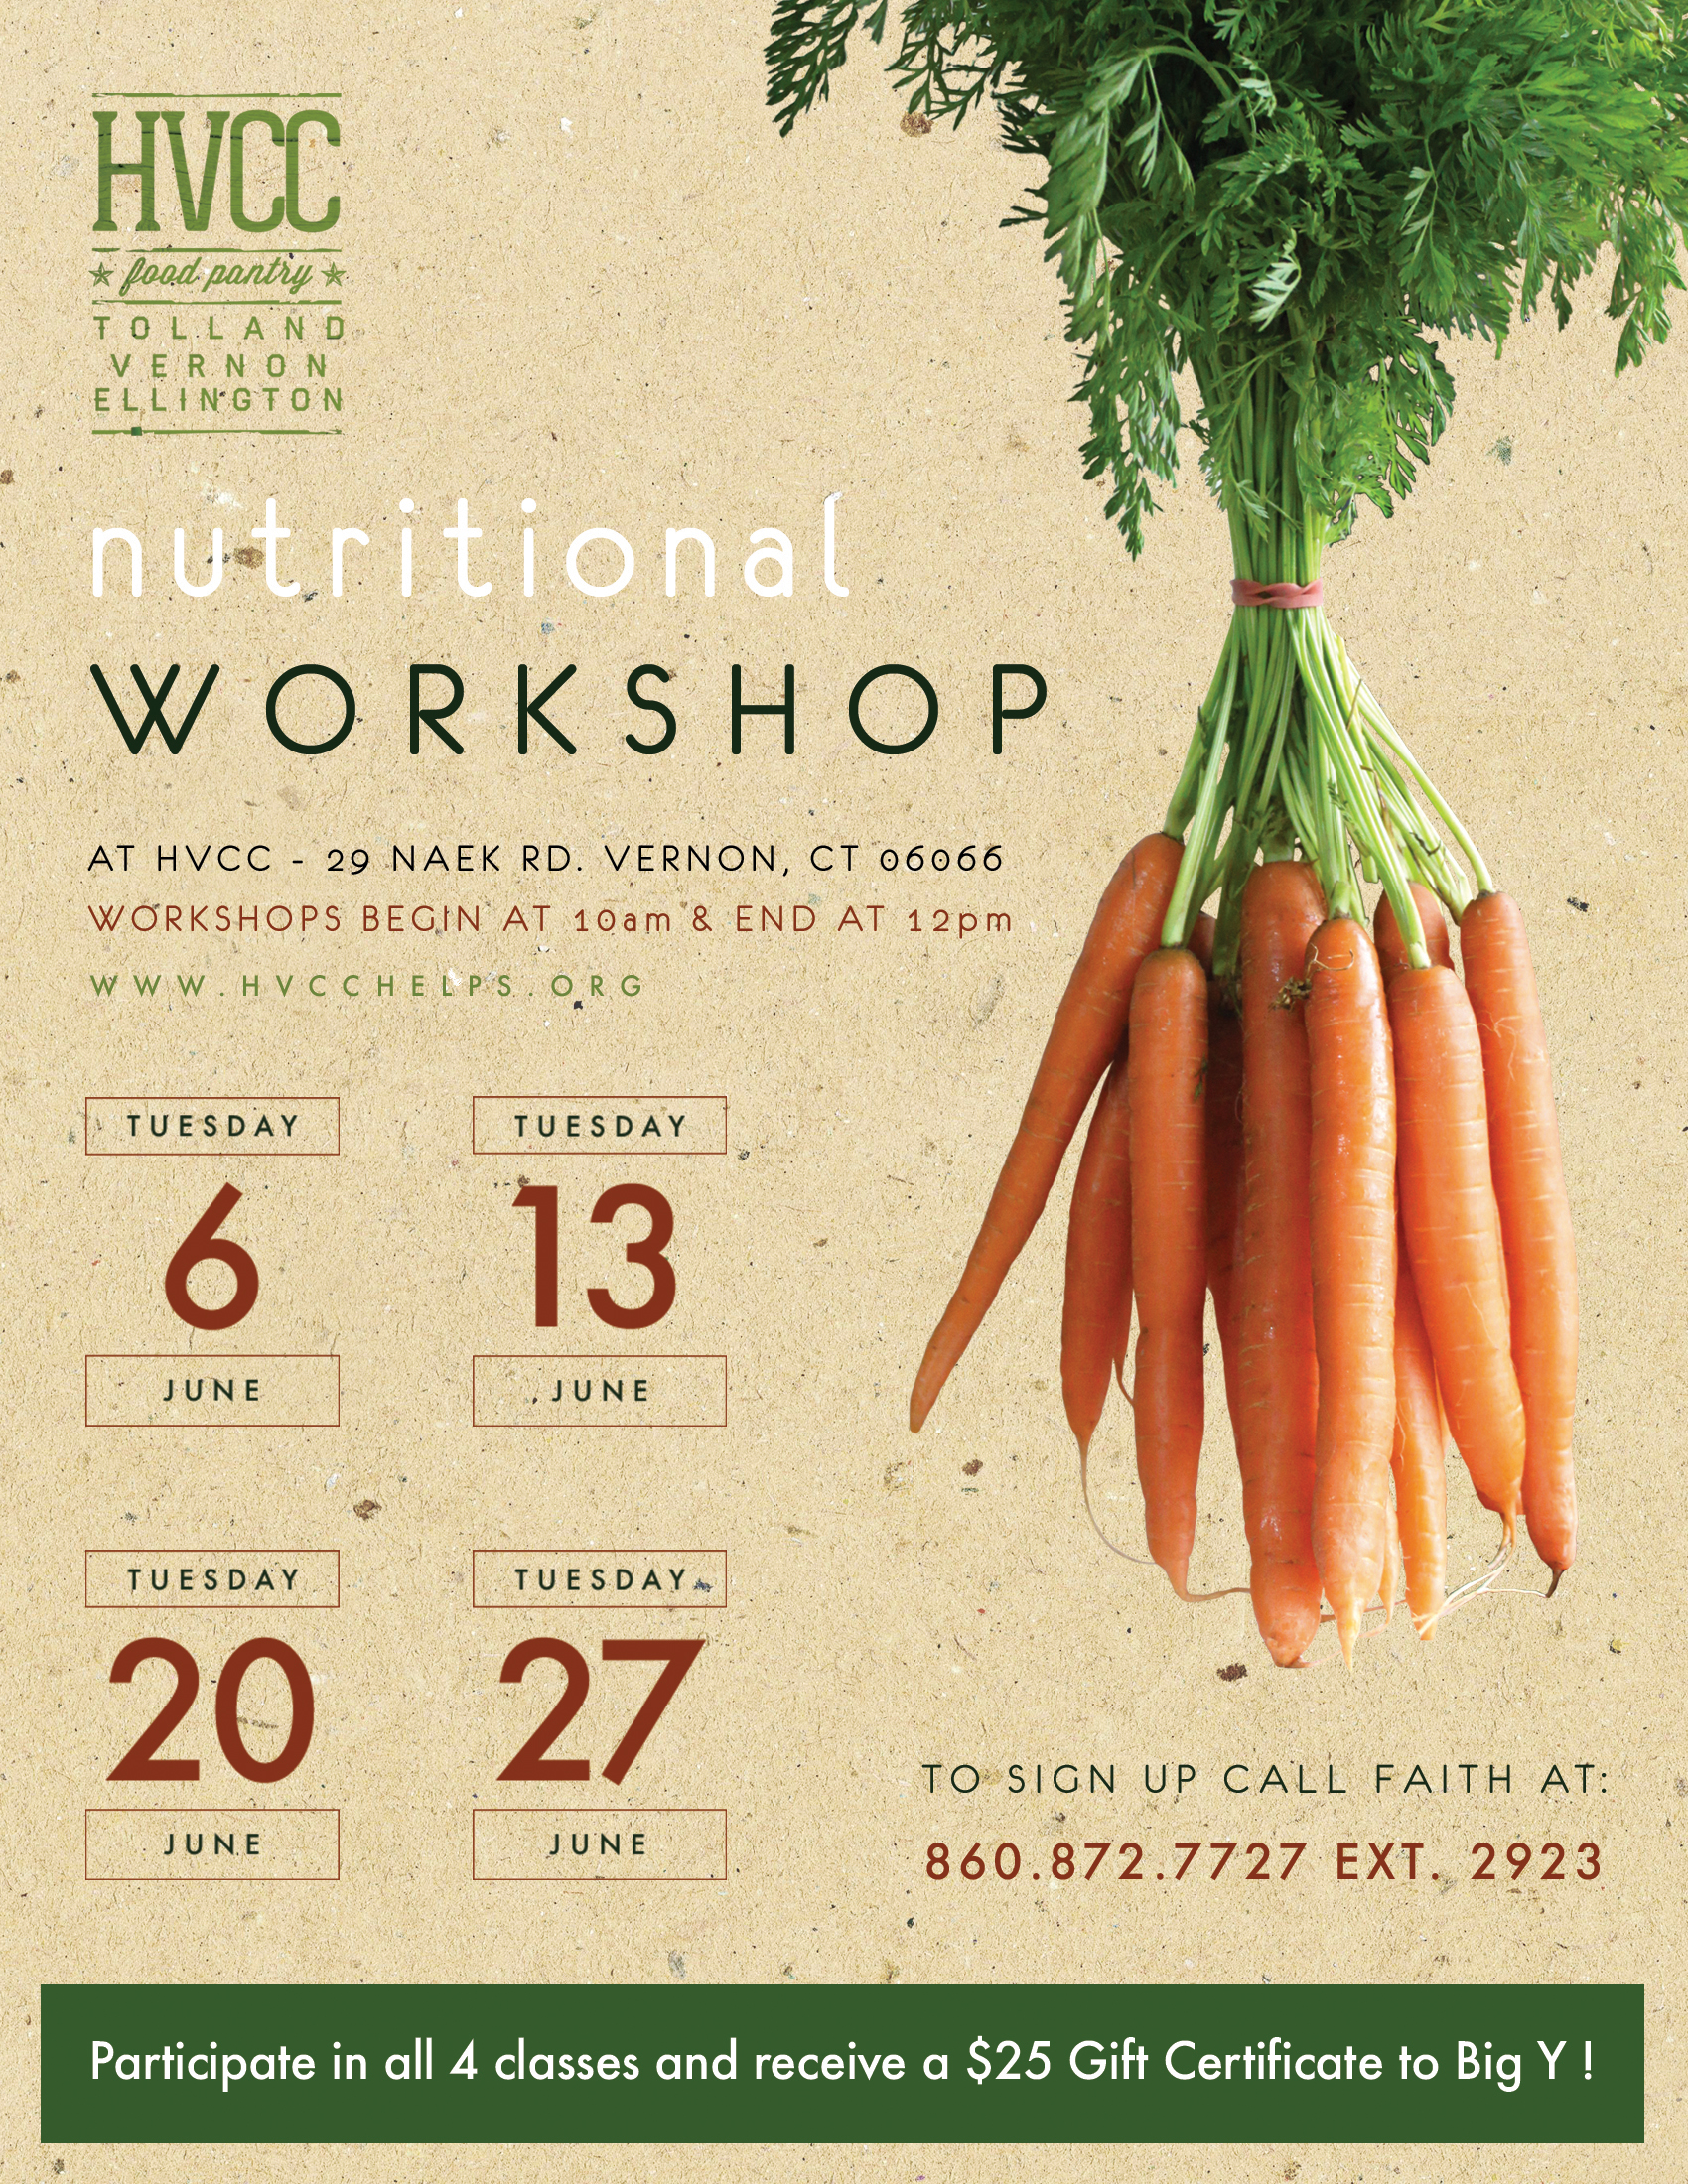 Community Workshop Promotion • Print/Web